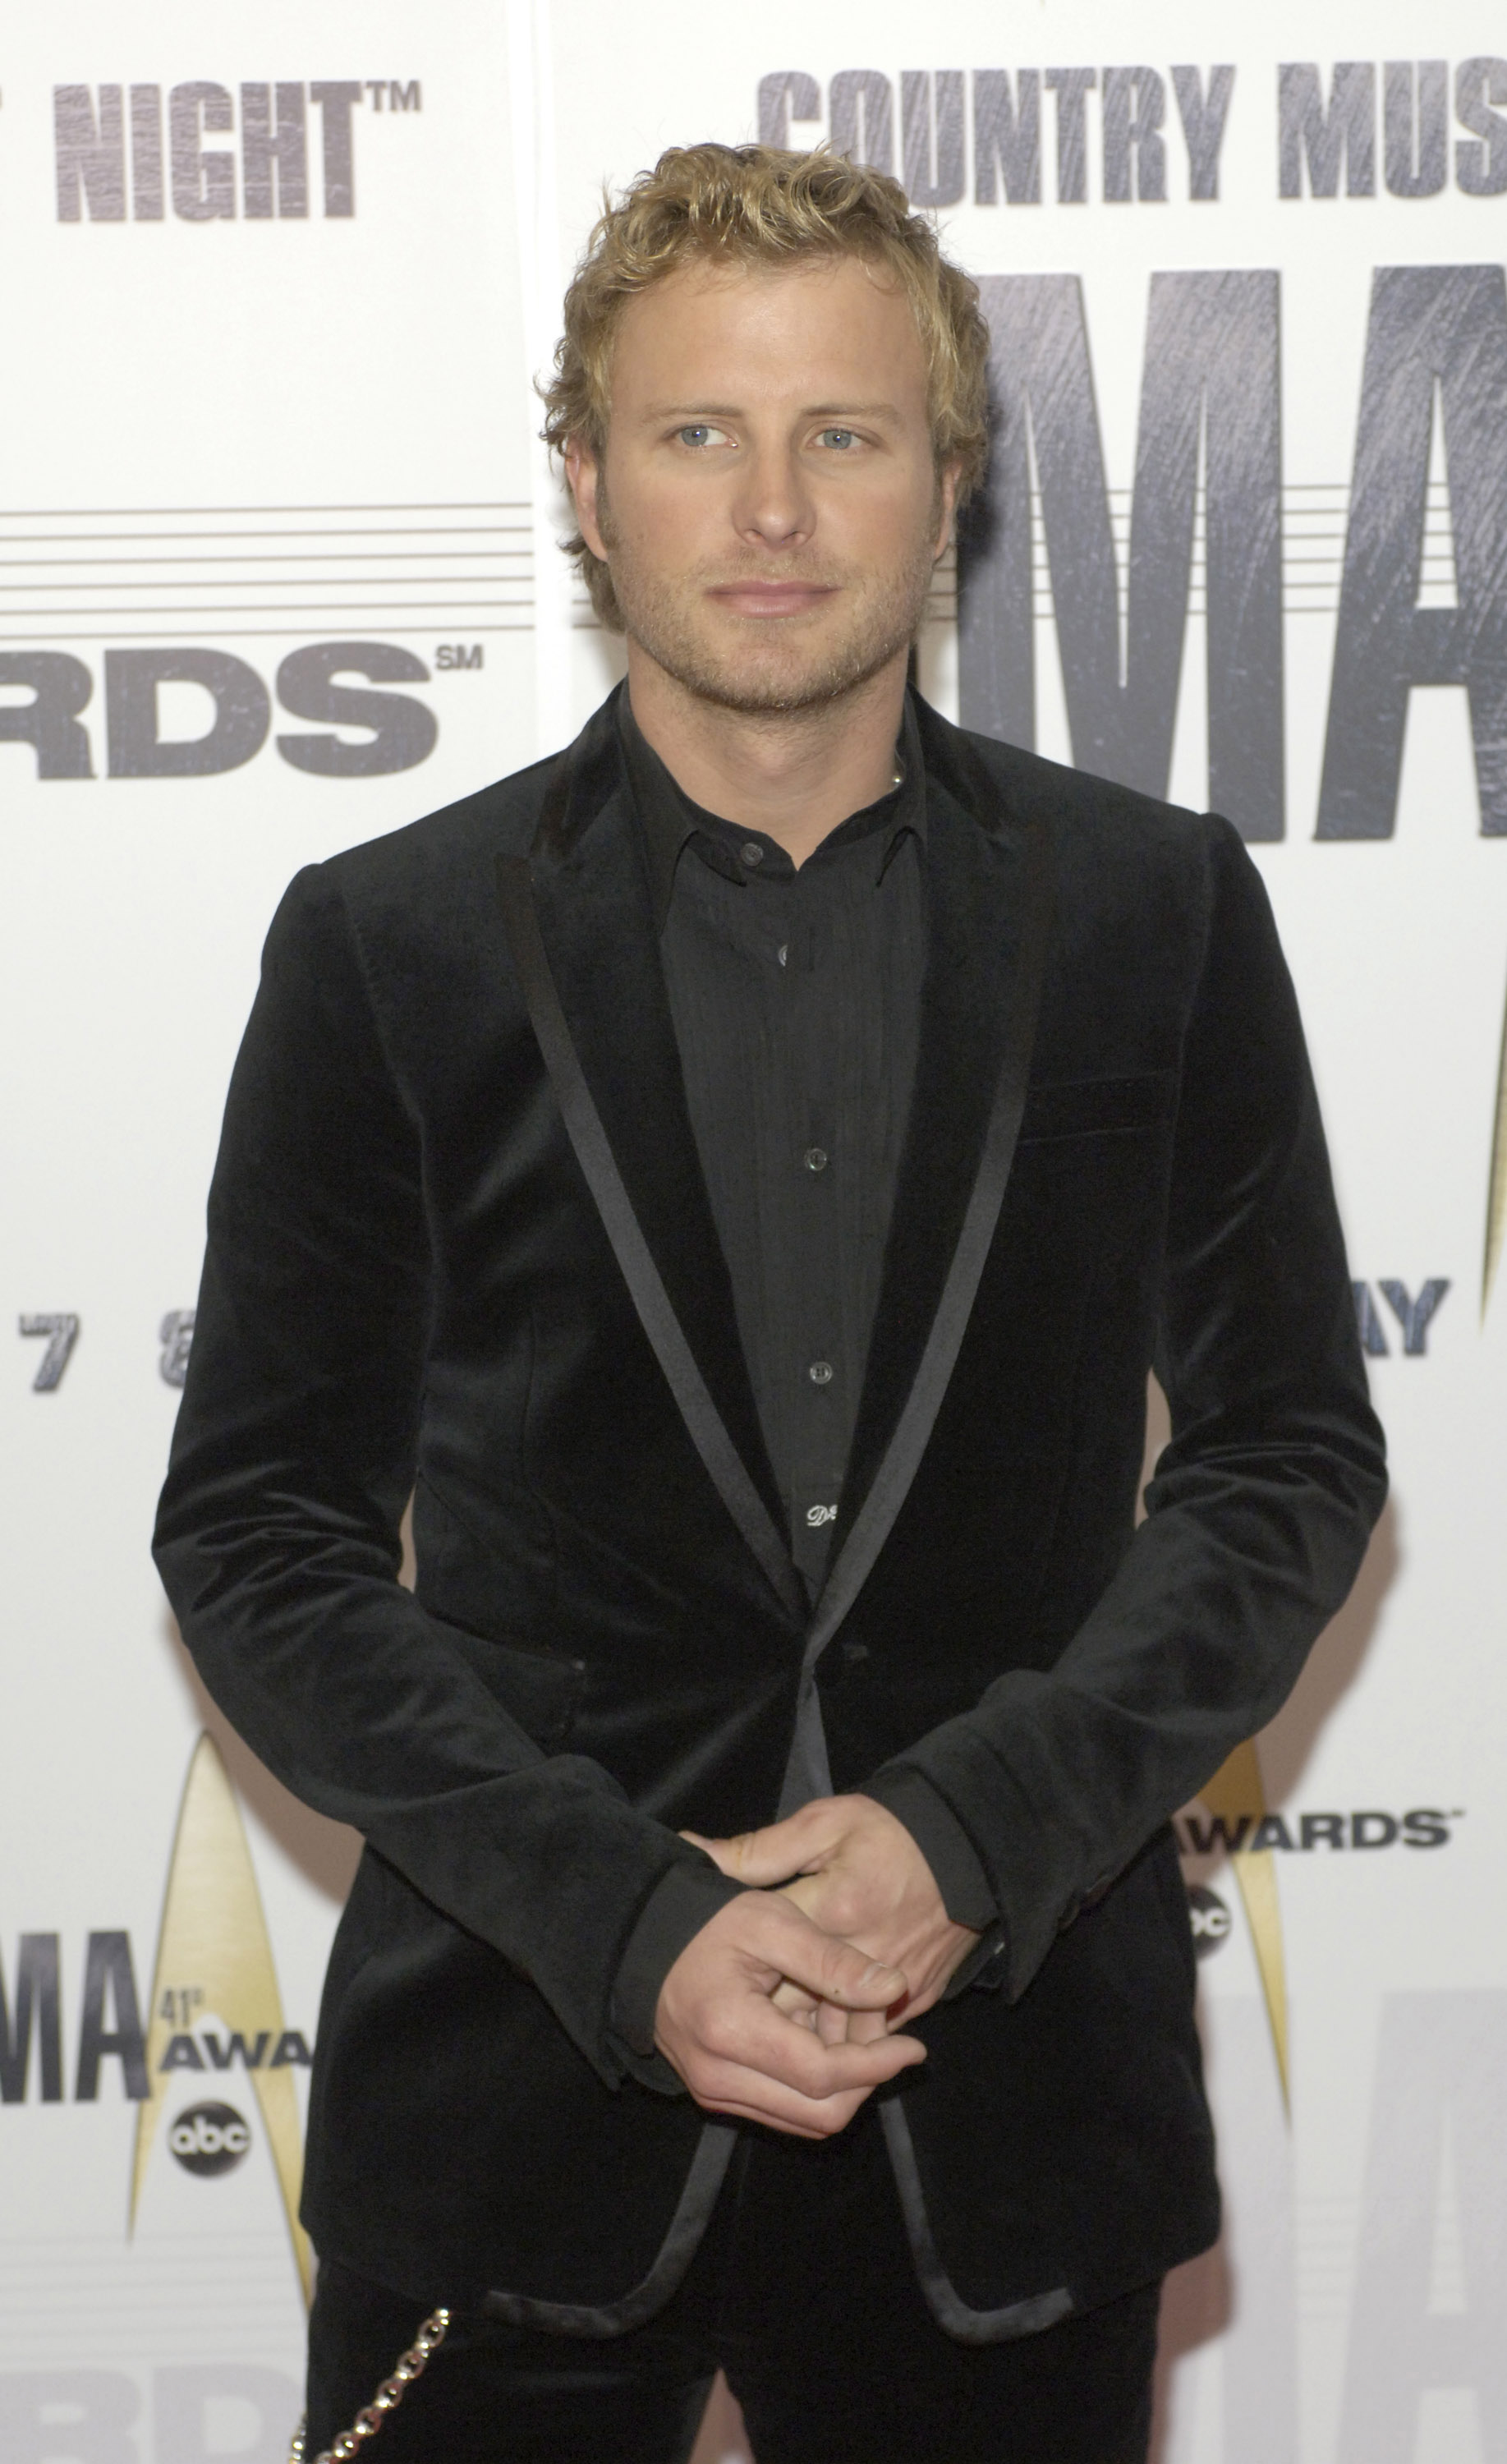 Dierks Bentley arrives at the 41st Annual CMA Awards at the Sommet Center on November 7, 2007 in Nashville TN; Photo by Frank Mullen/WireImage